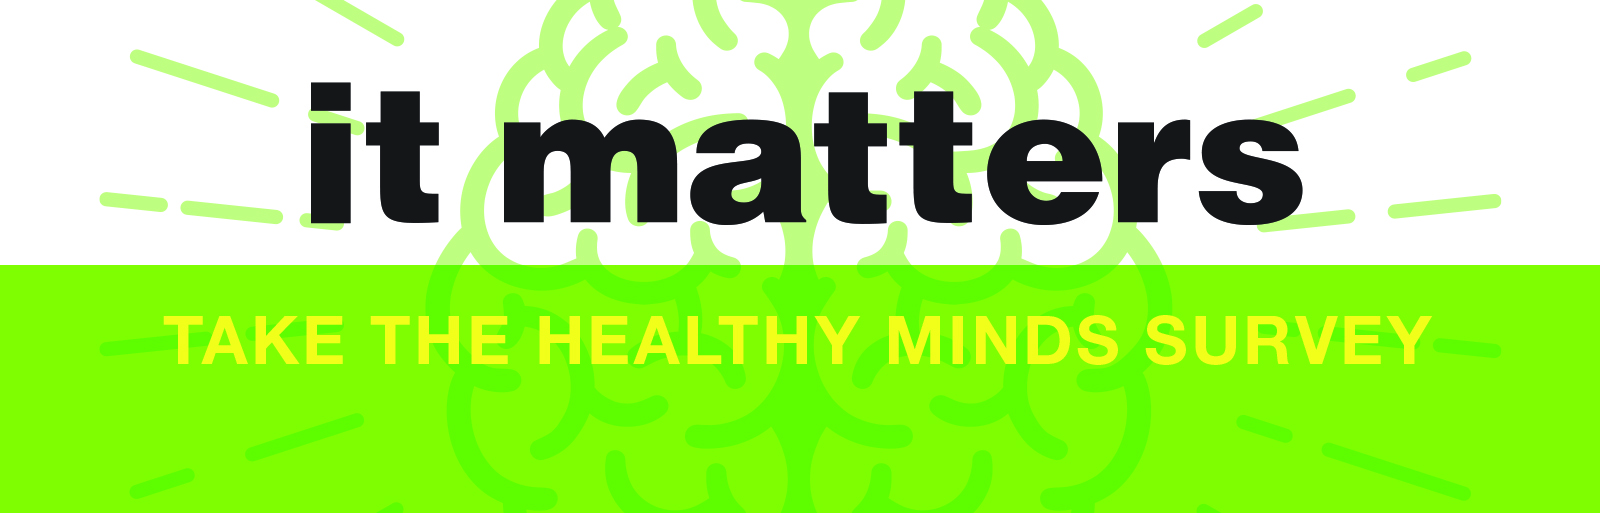 cover image for the Healthy Minds survey